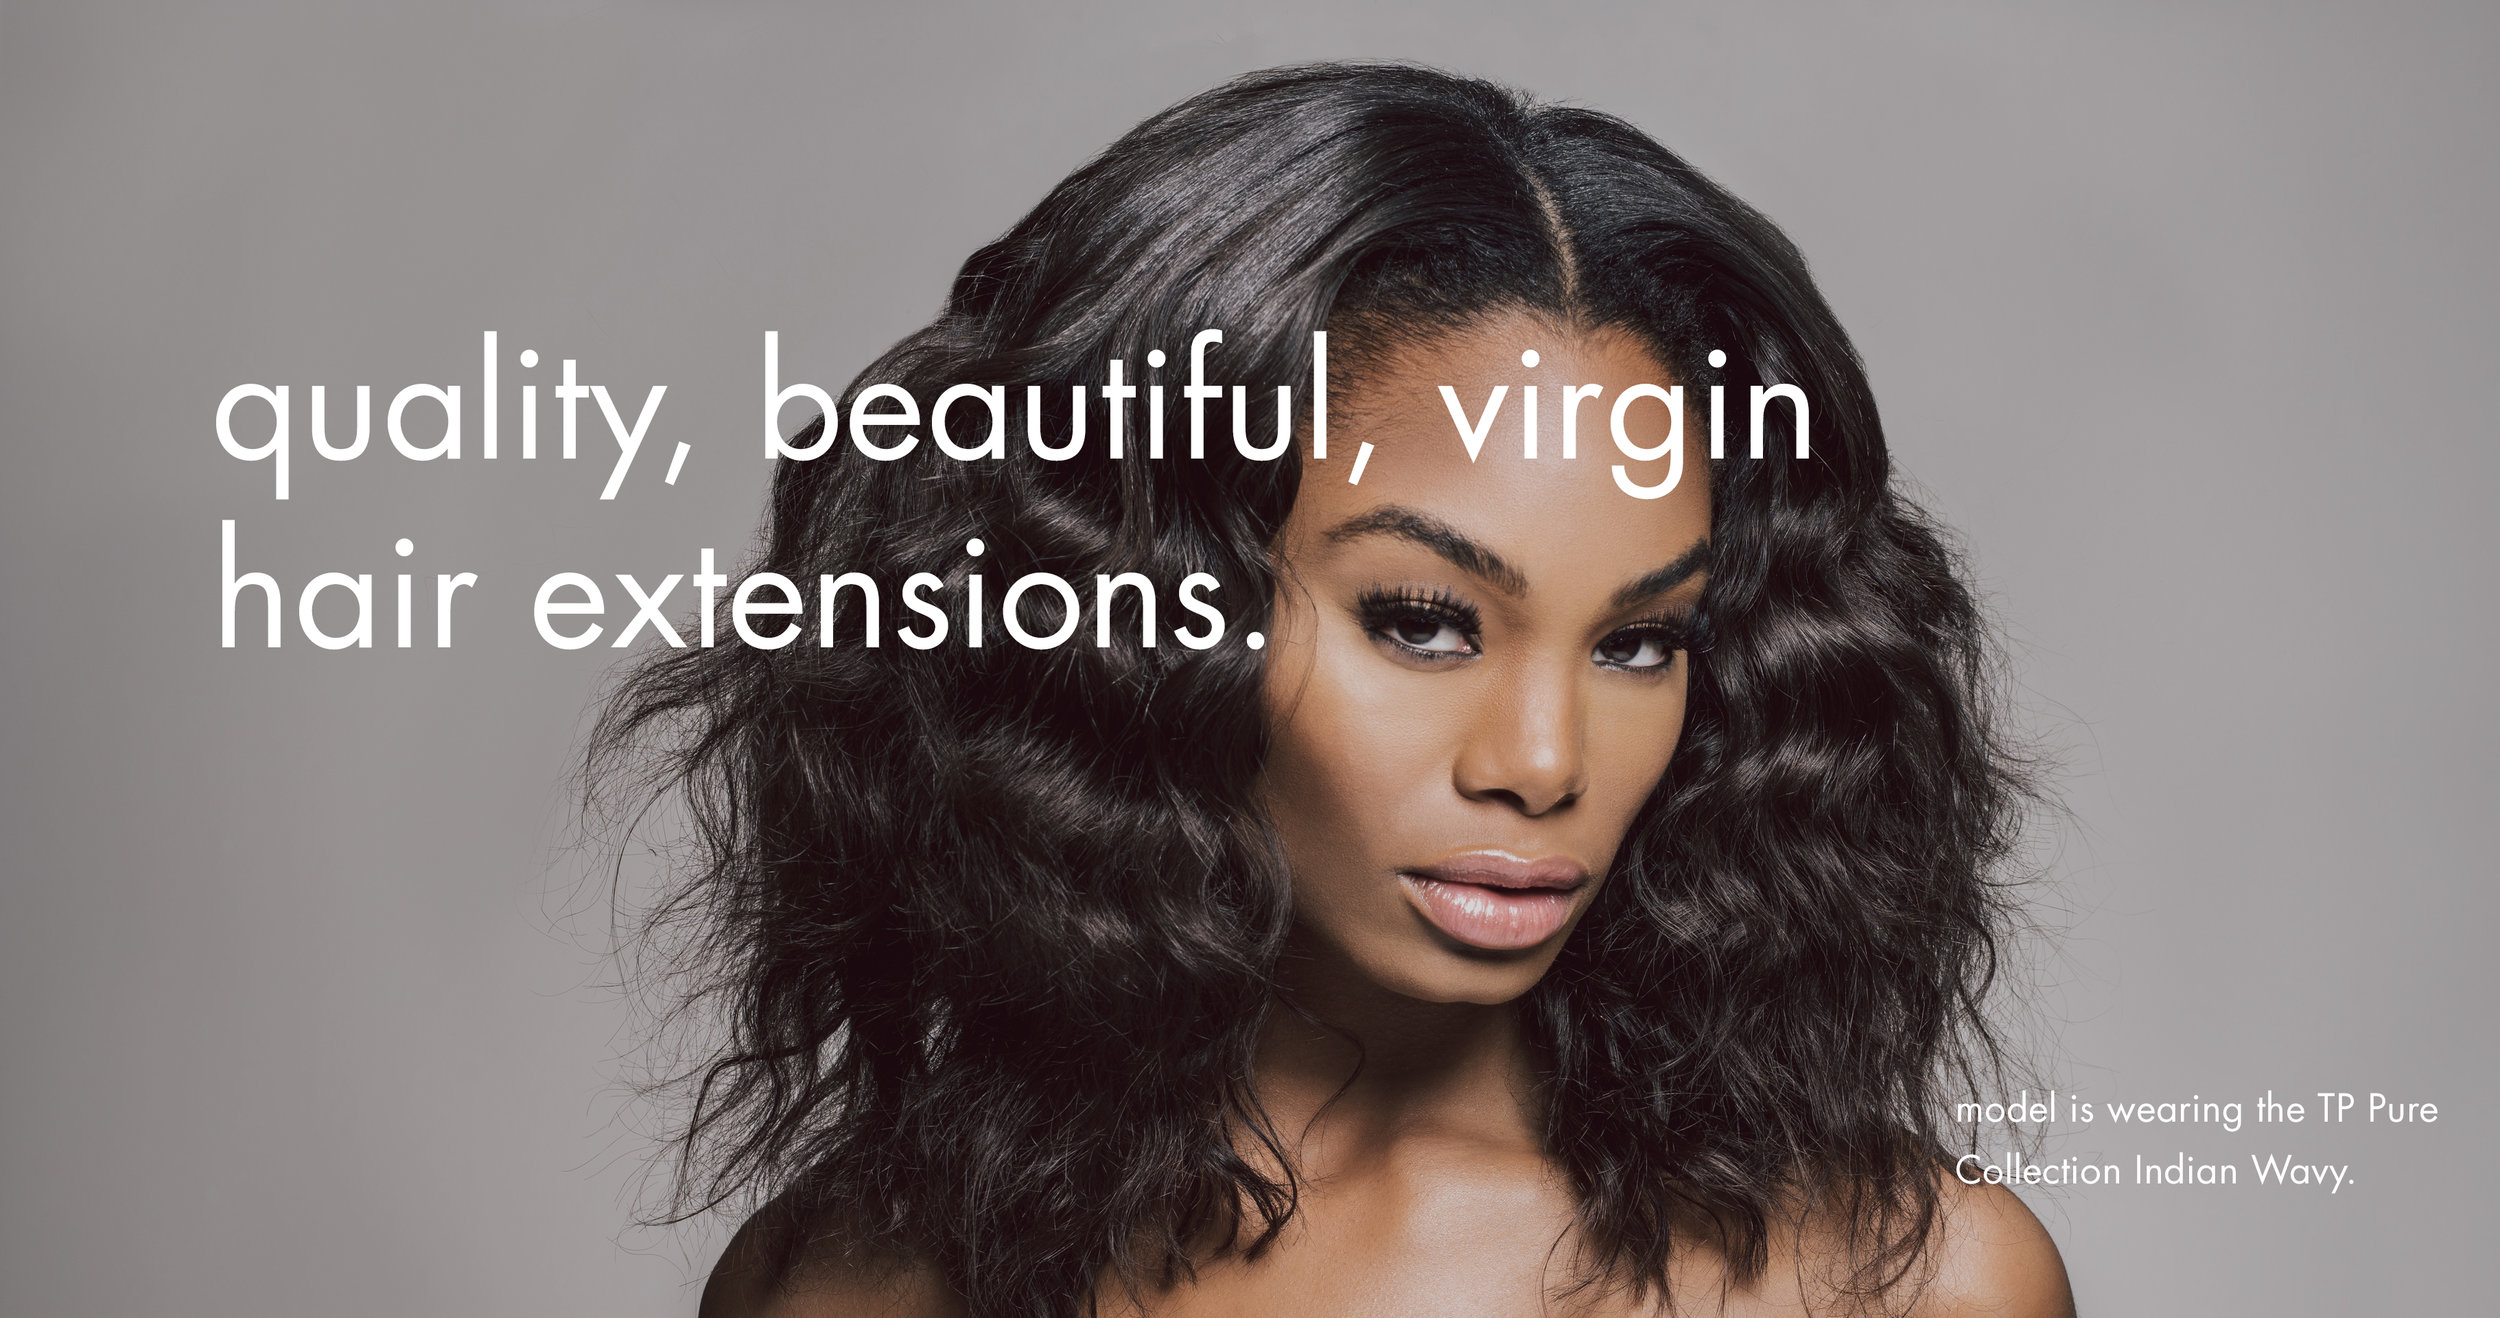 quality, beautiful, virgin hair extensions. - by Tina Pearson